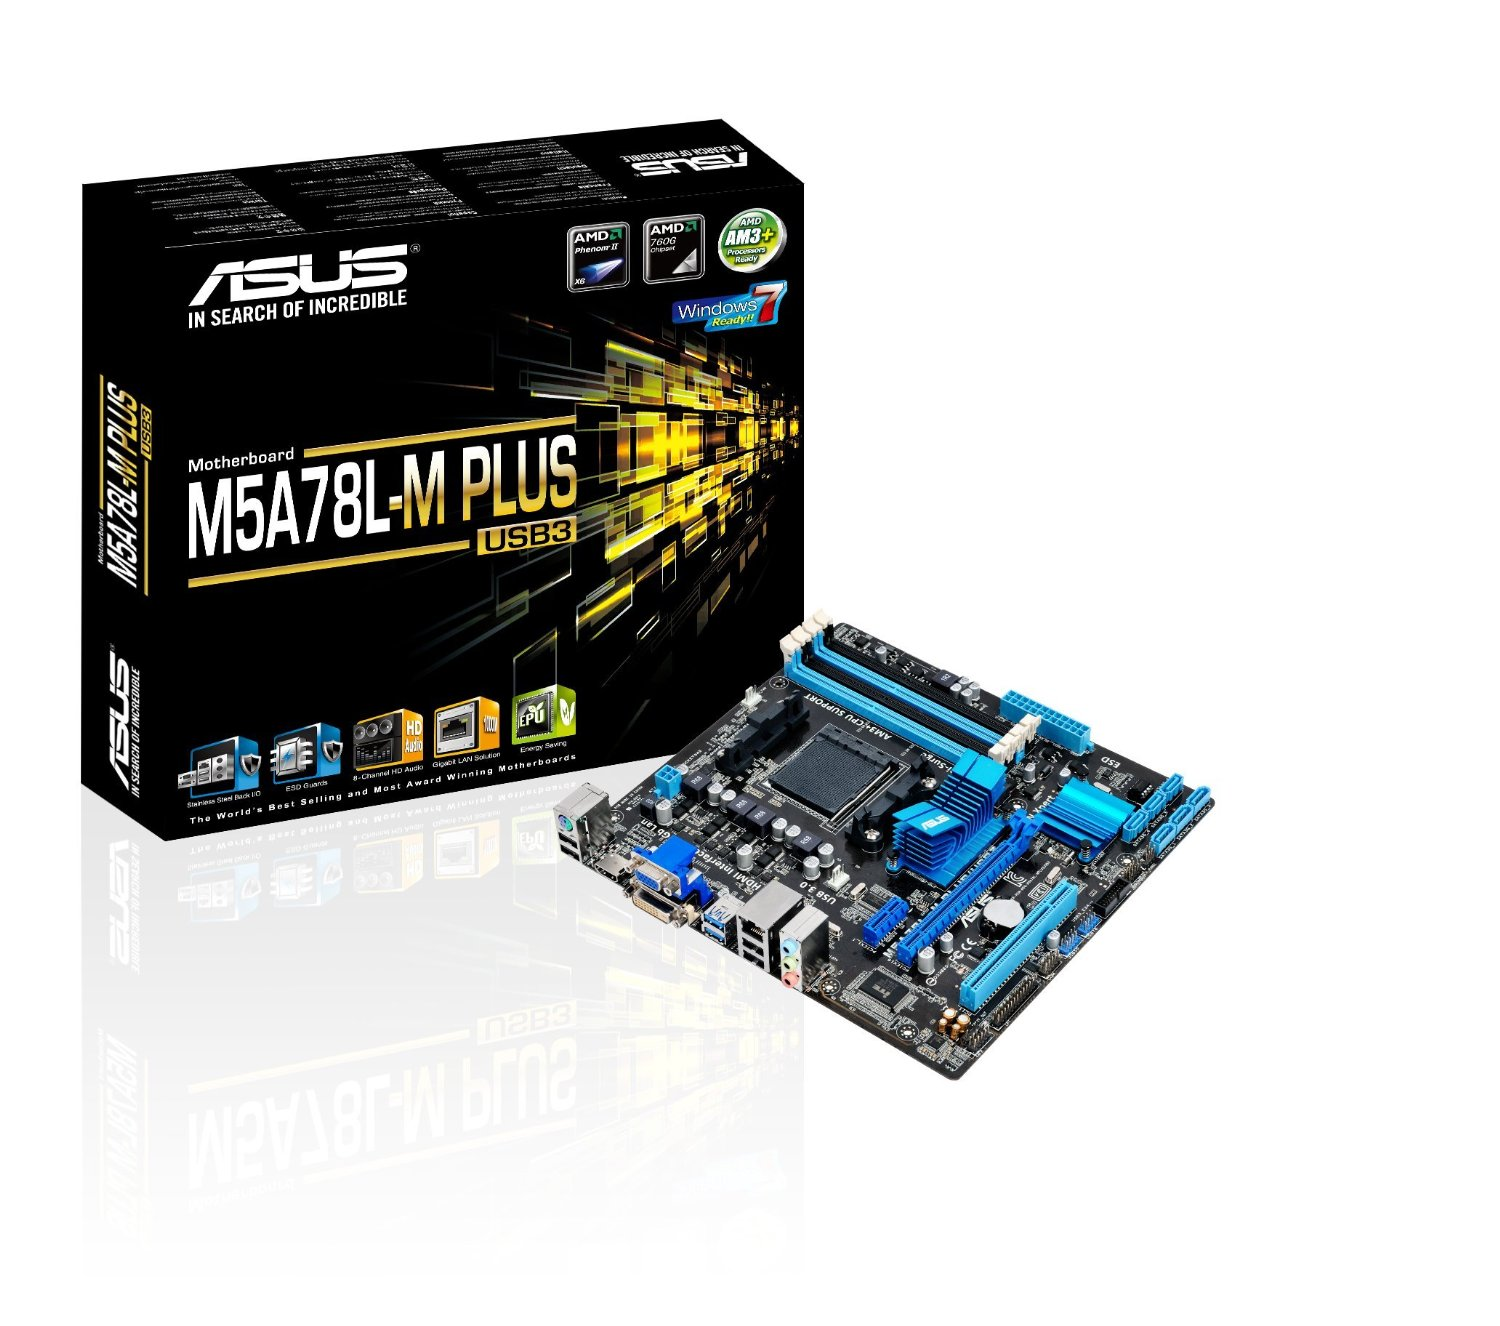 asus m5a78l m plus usb3 am3 ddr3 hdmi 760g microatx motherboard 97 asus m5a78l m plus usb3 am3 ddr3 hdmi 760g microatx motherboard  at cos-gaming.co